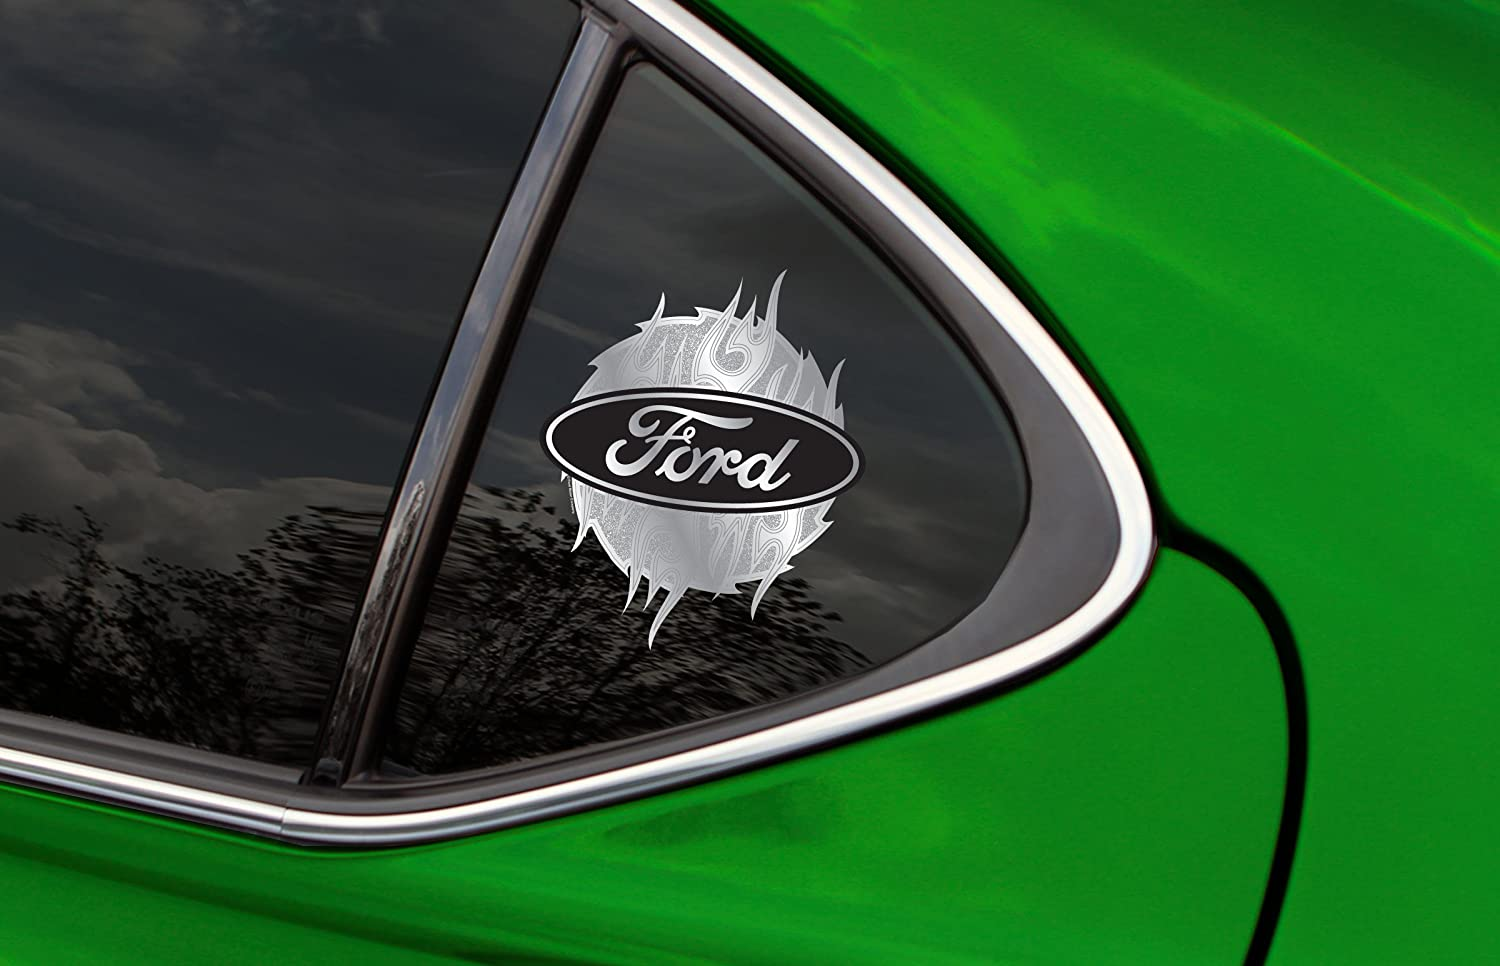 CHROMA 003070 Classic Emblem Ford Blades with Glitter Decal